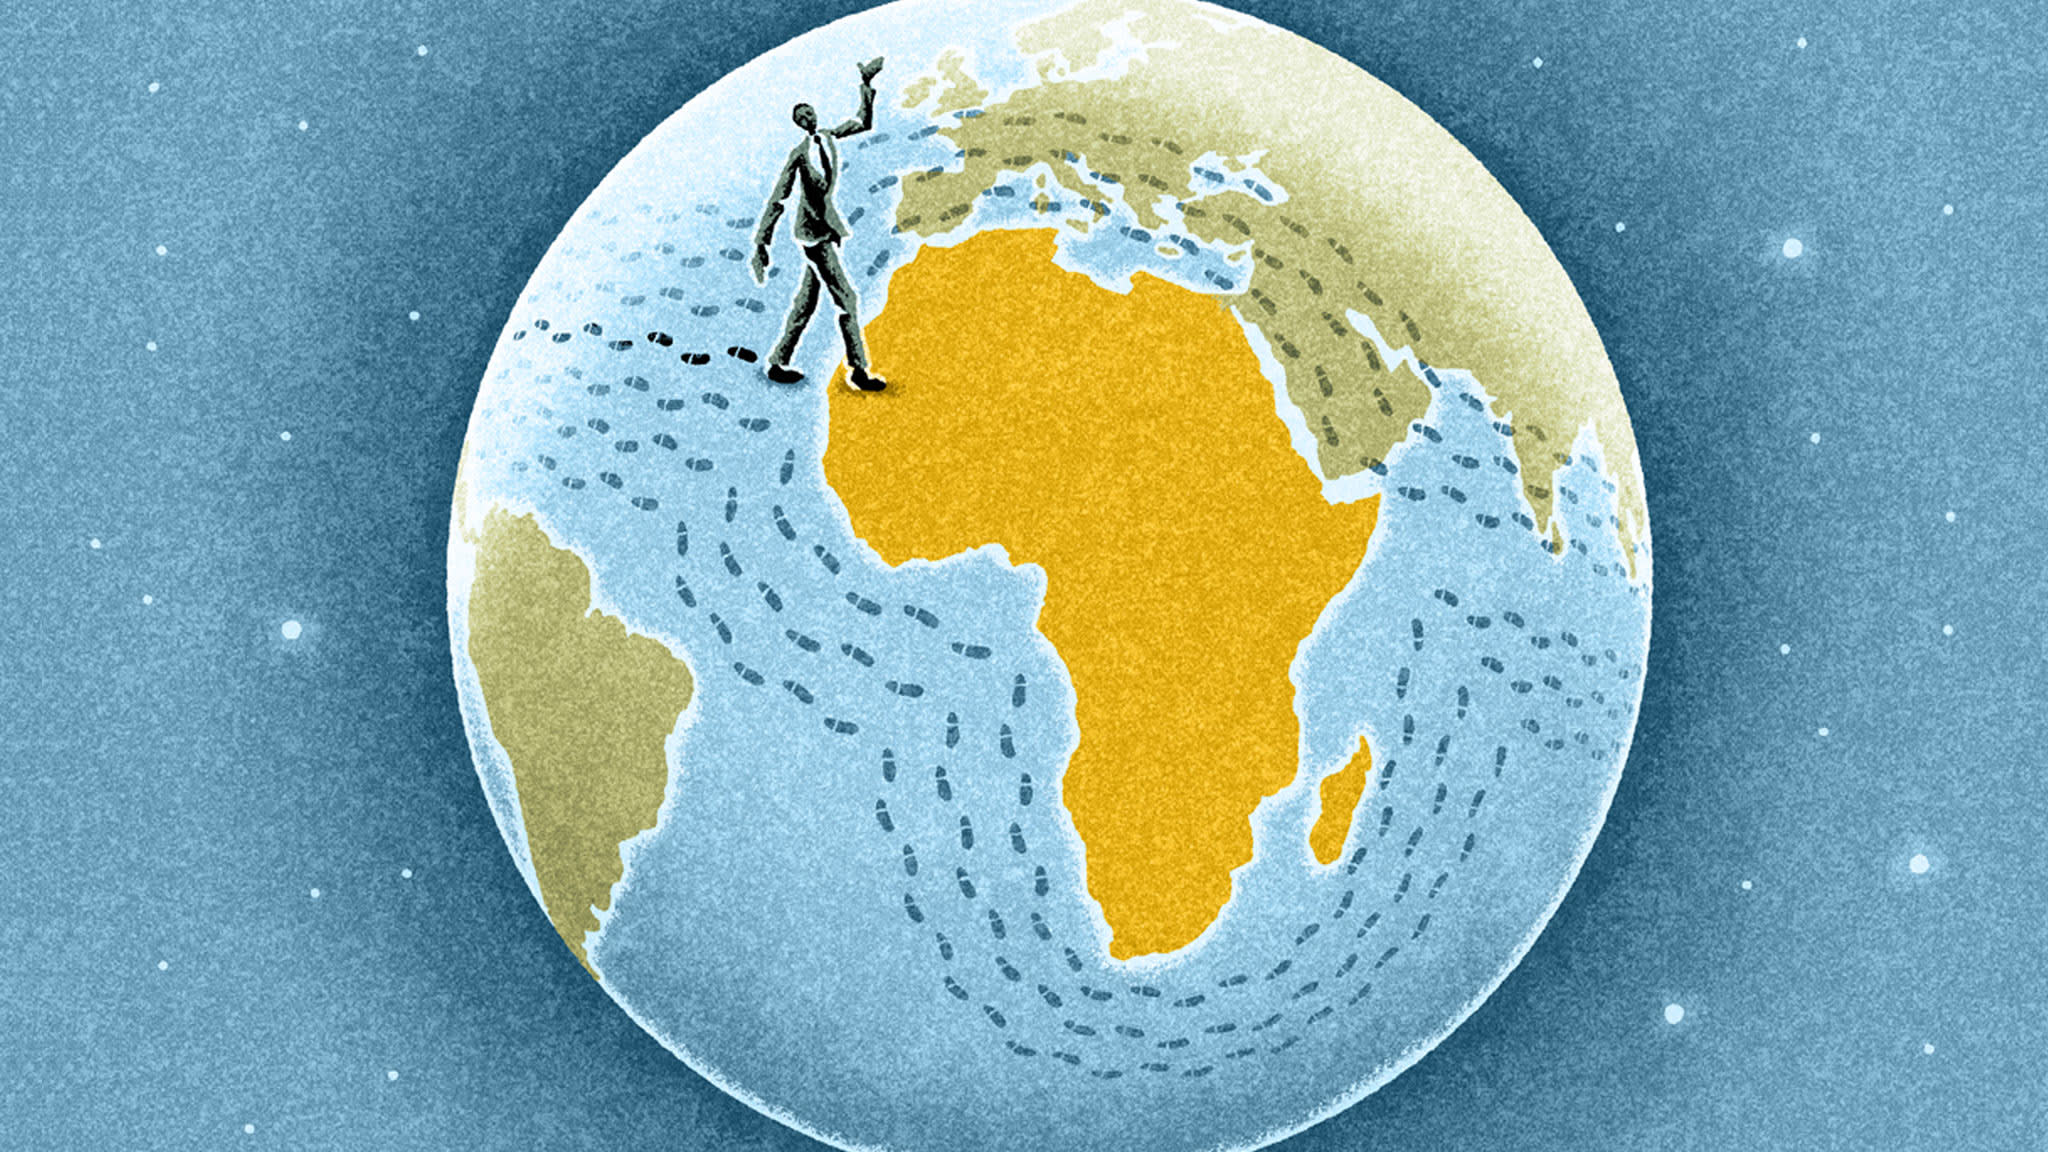 Obama's trip to Africa is too little – and very late   Financial Times